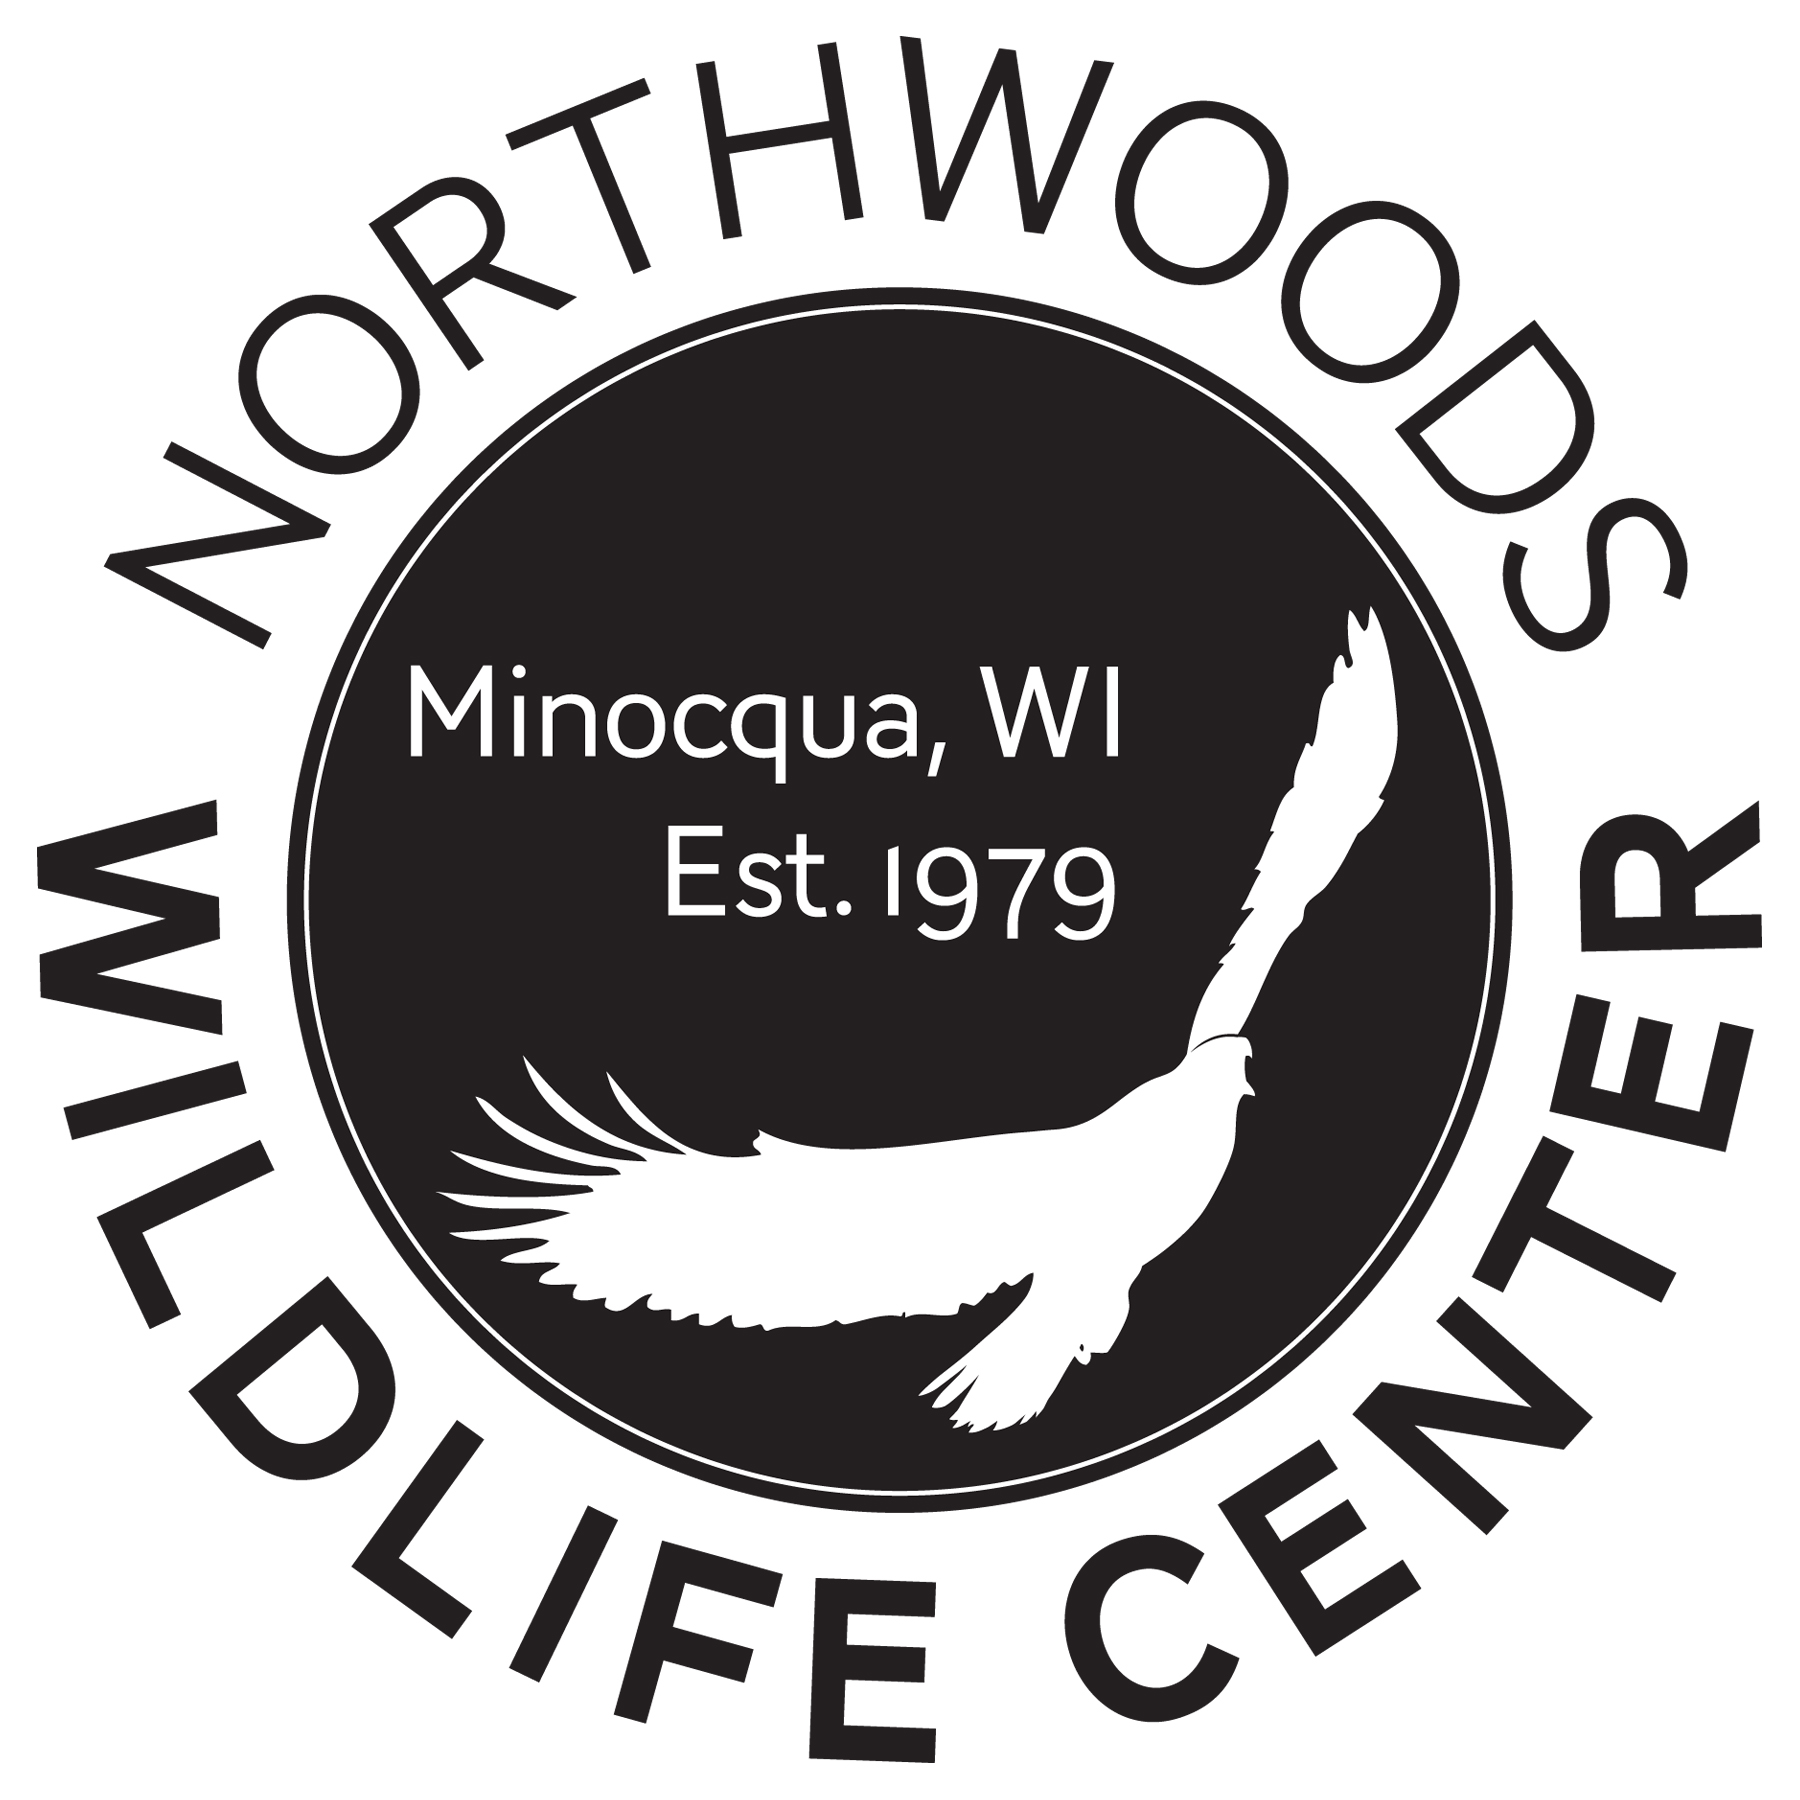 Northwoods Wildlife Center's Photo Contest